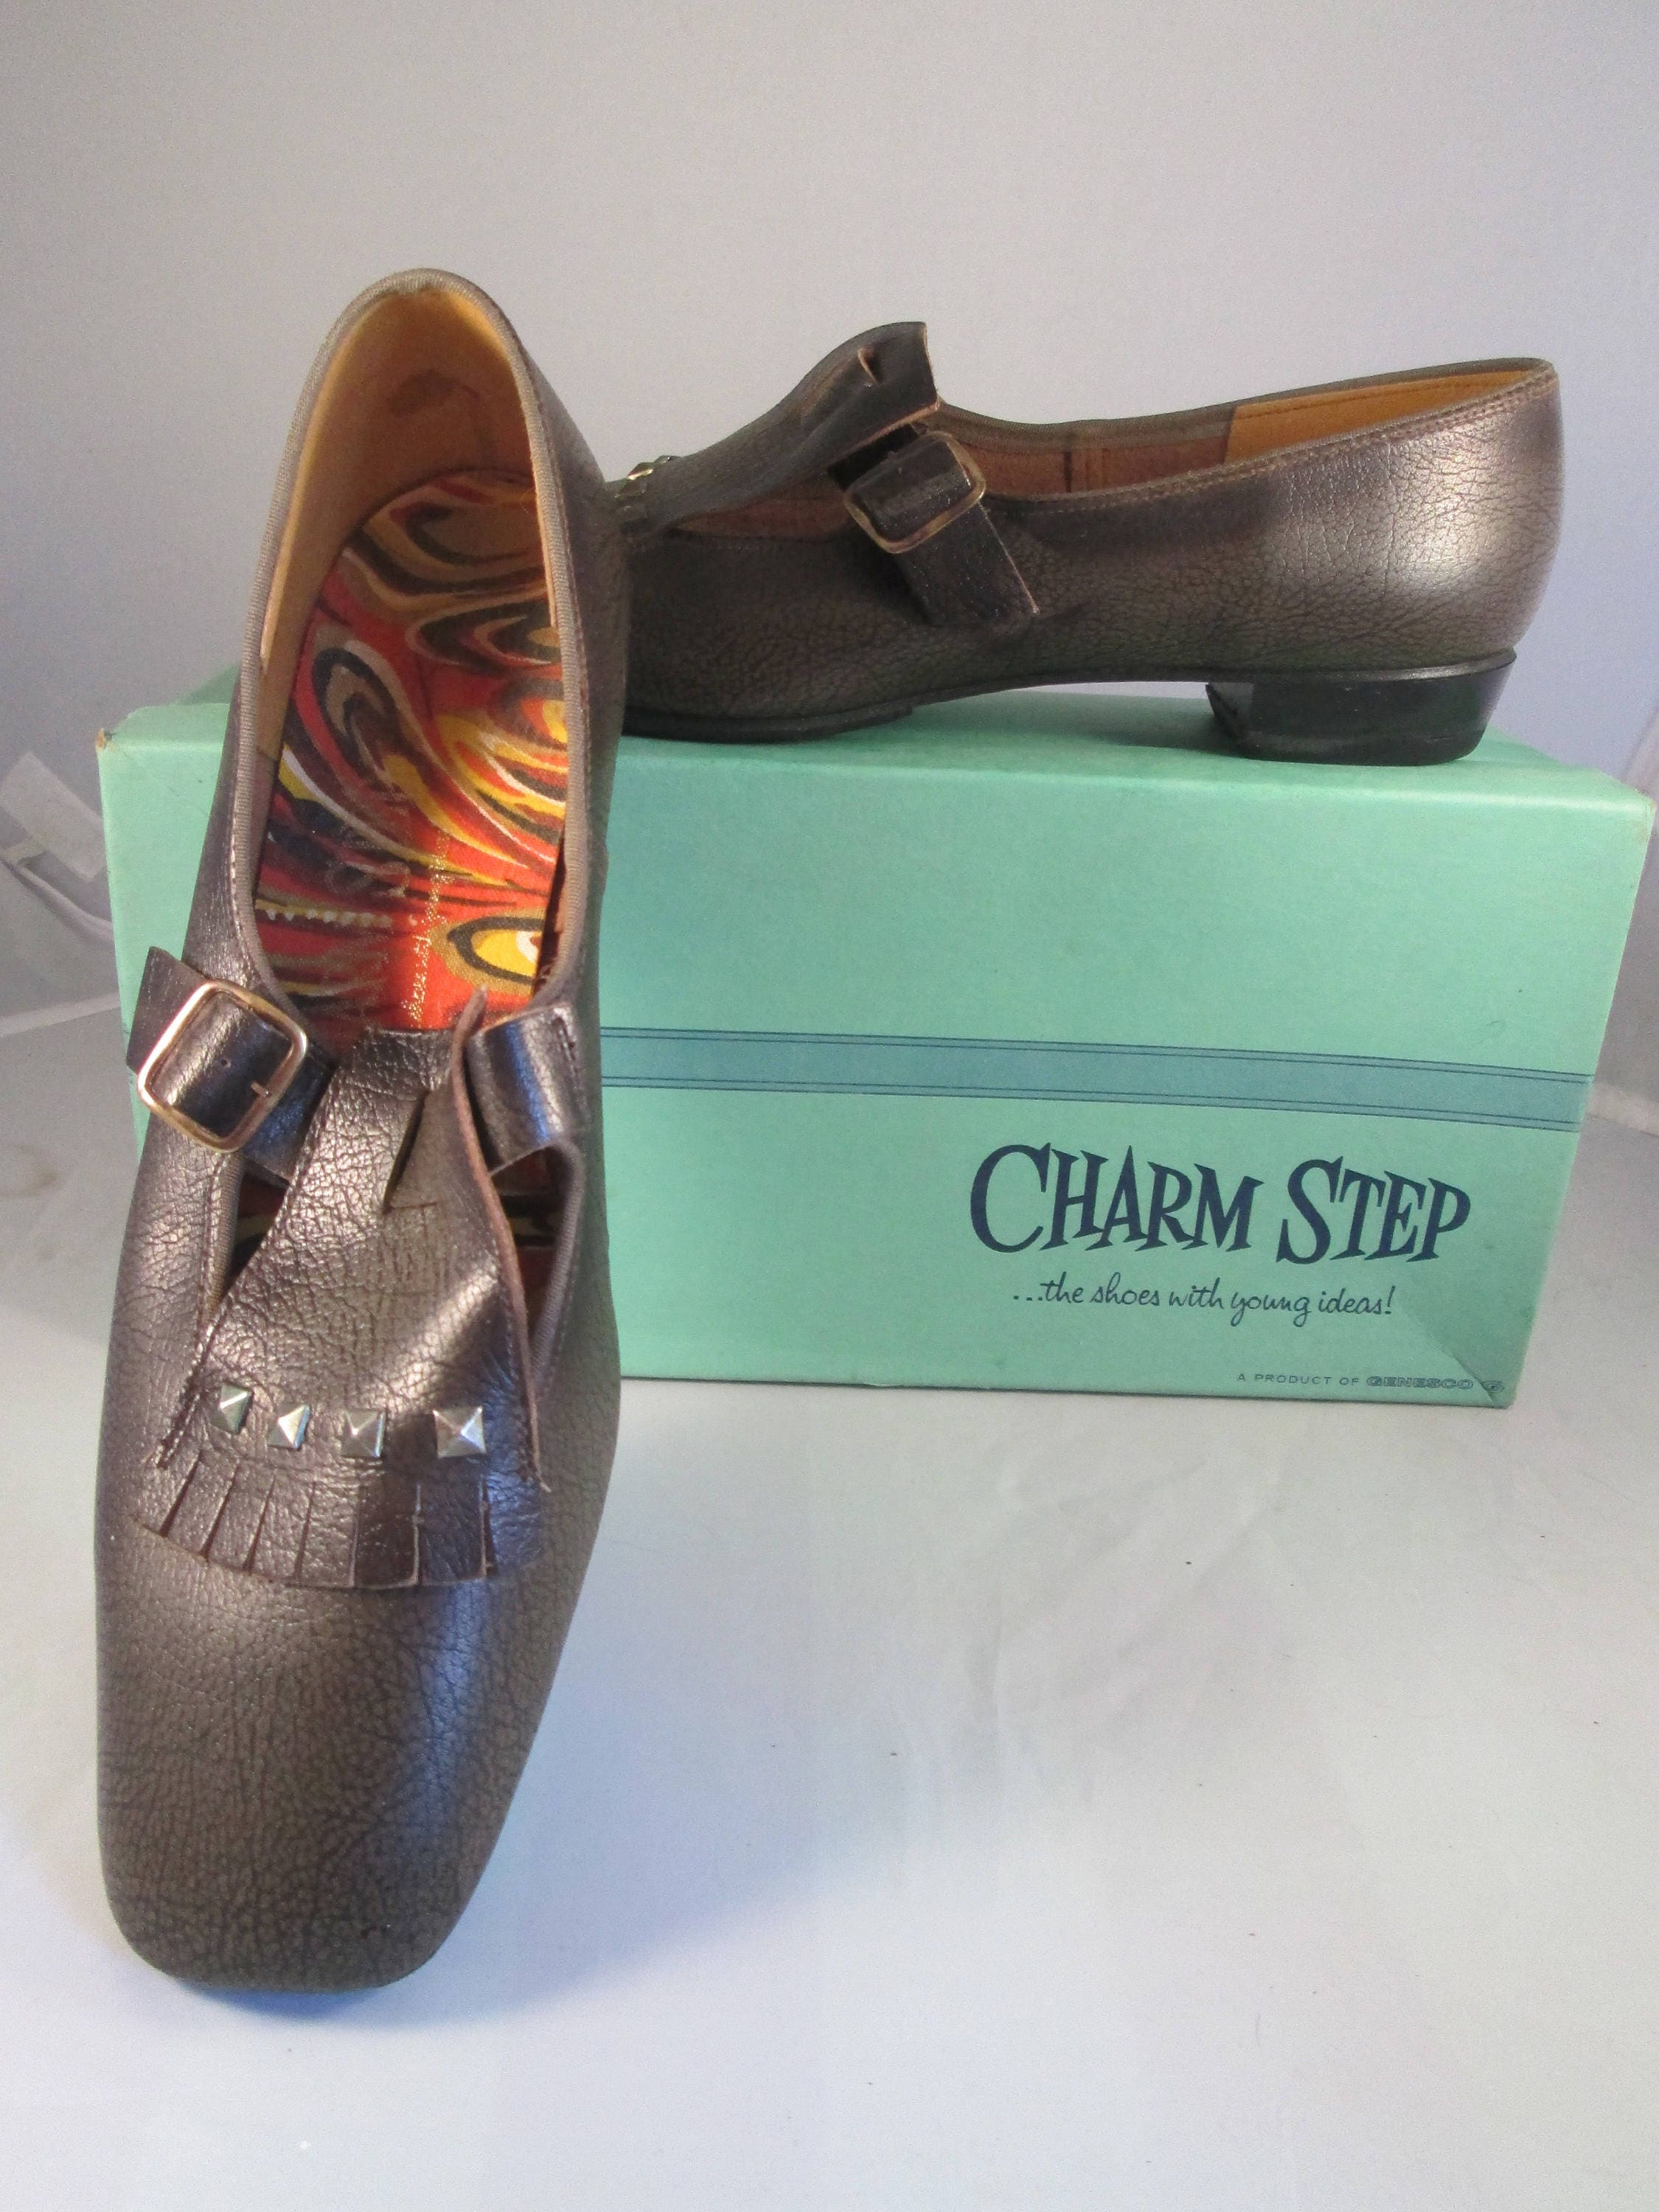 unworn 1960's brown leather Charm Step beatnik flats, style tassel and side-buckle buccaneer style flats, loafers, 8 1/2M, 062734